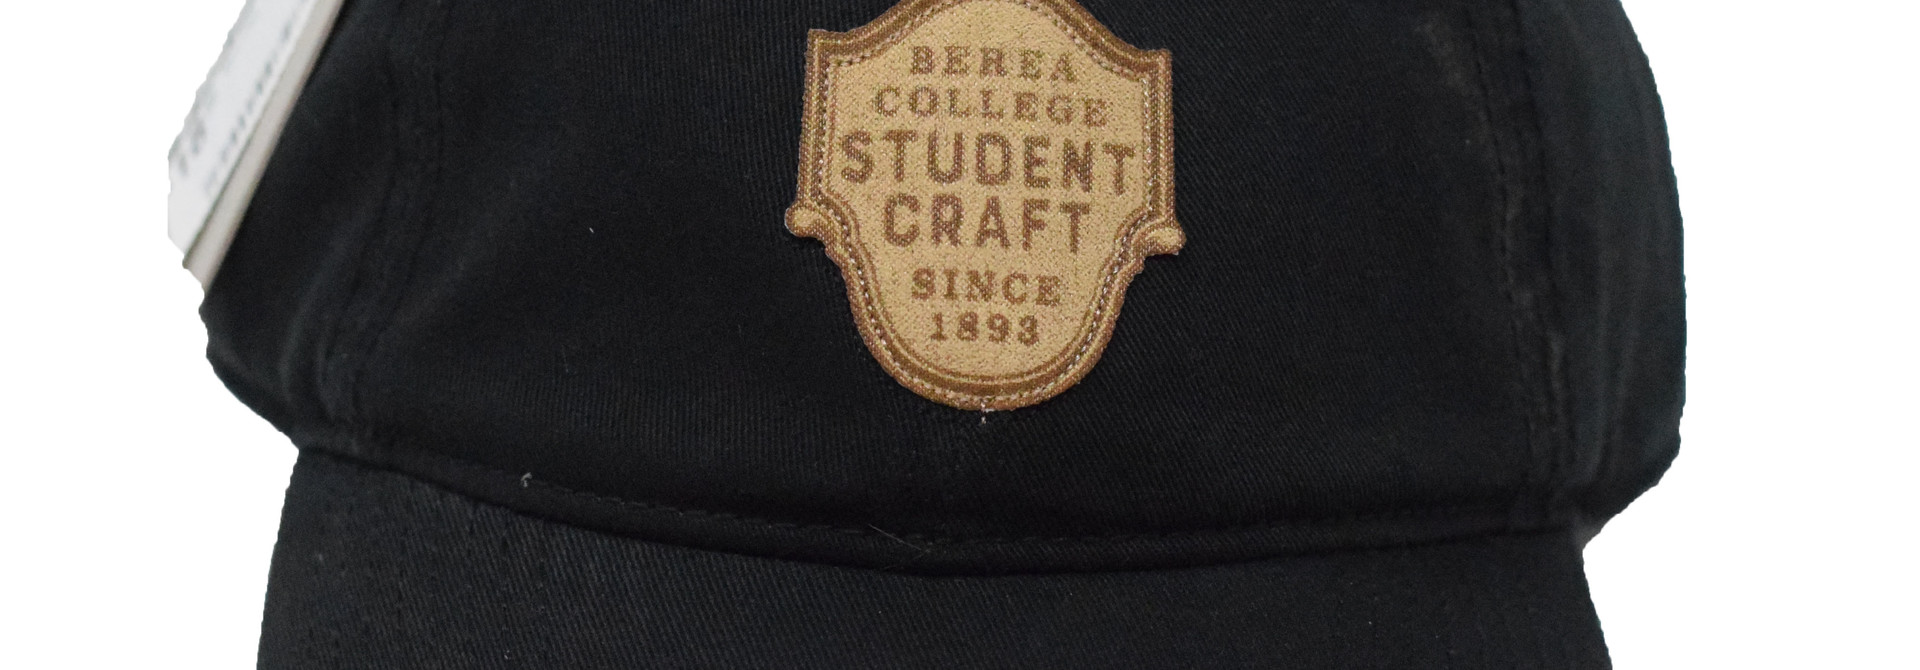 Berea College Student Craft Ball Cap